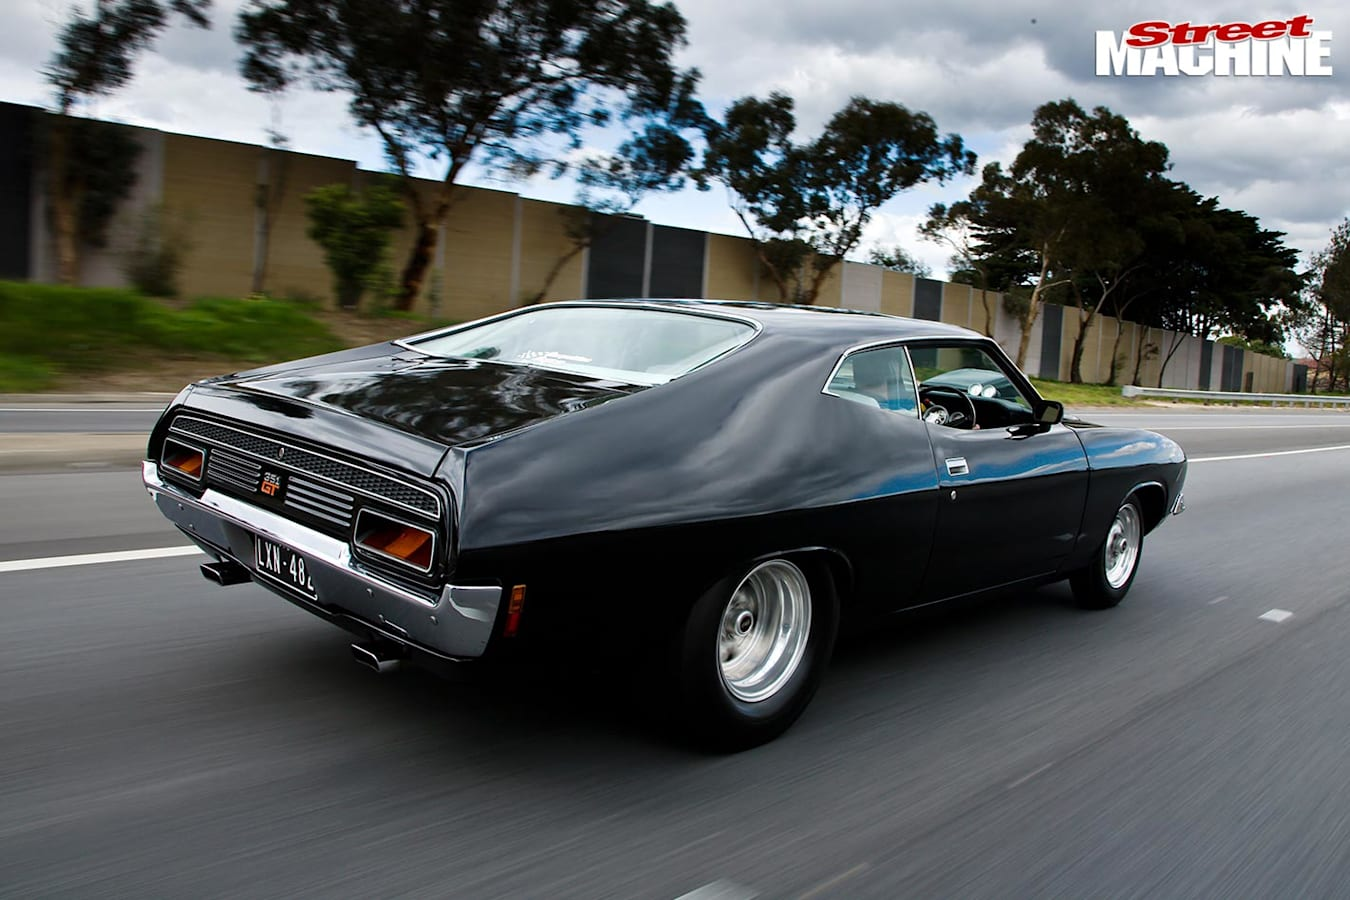 Ford Falcon XB coupe onroad